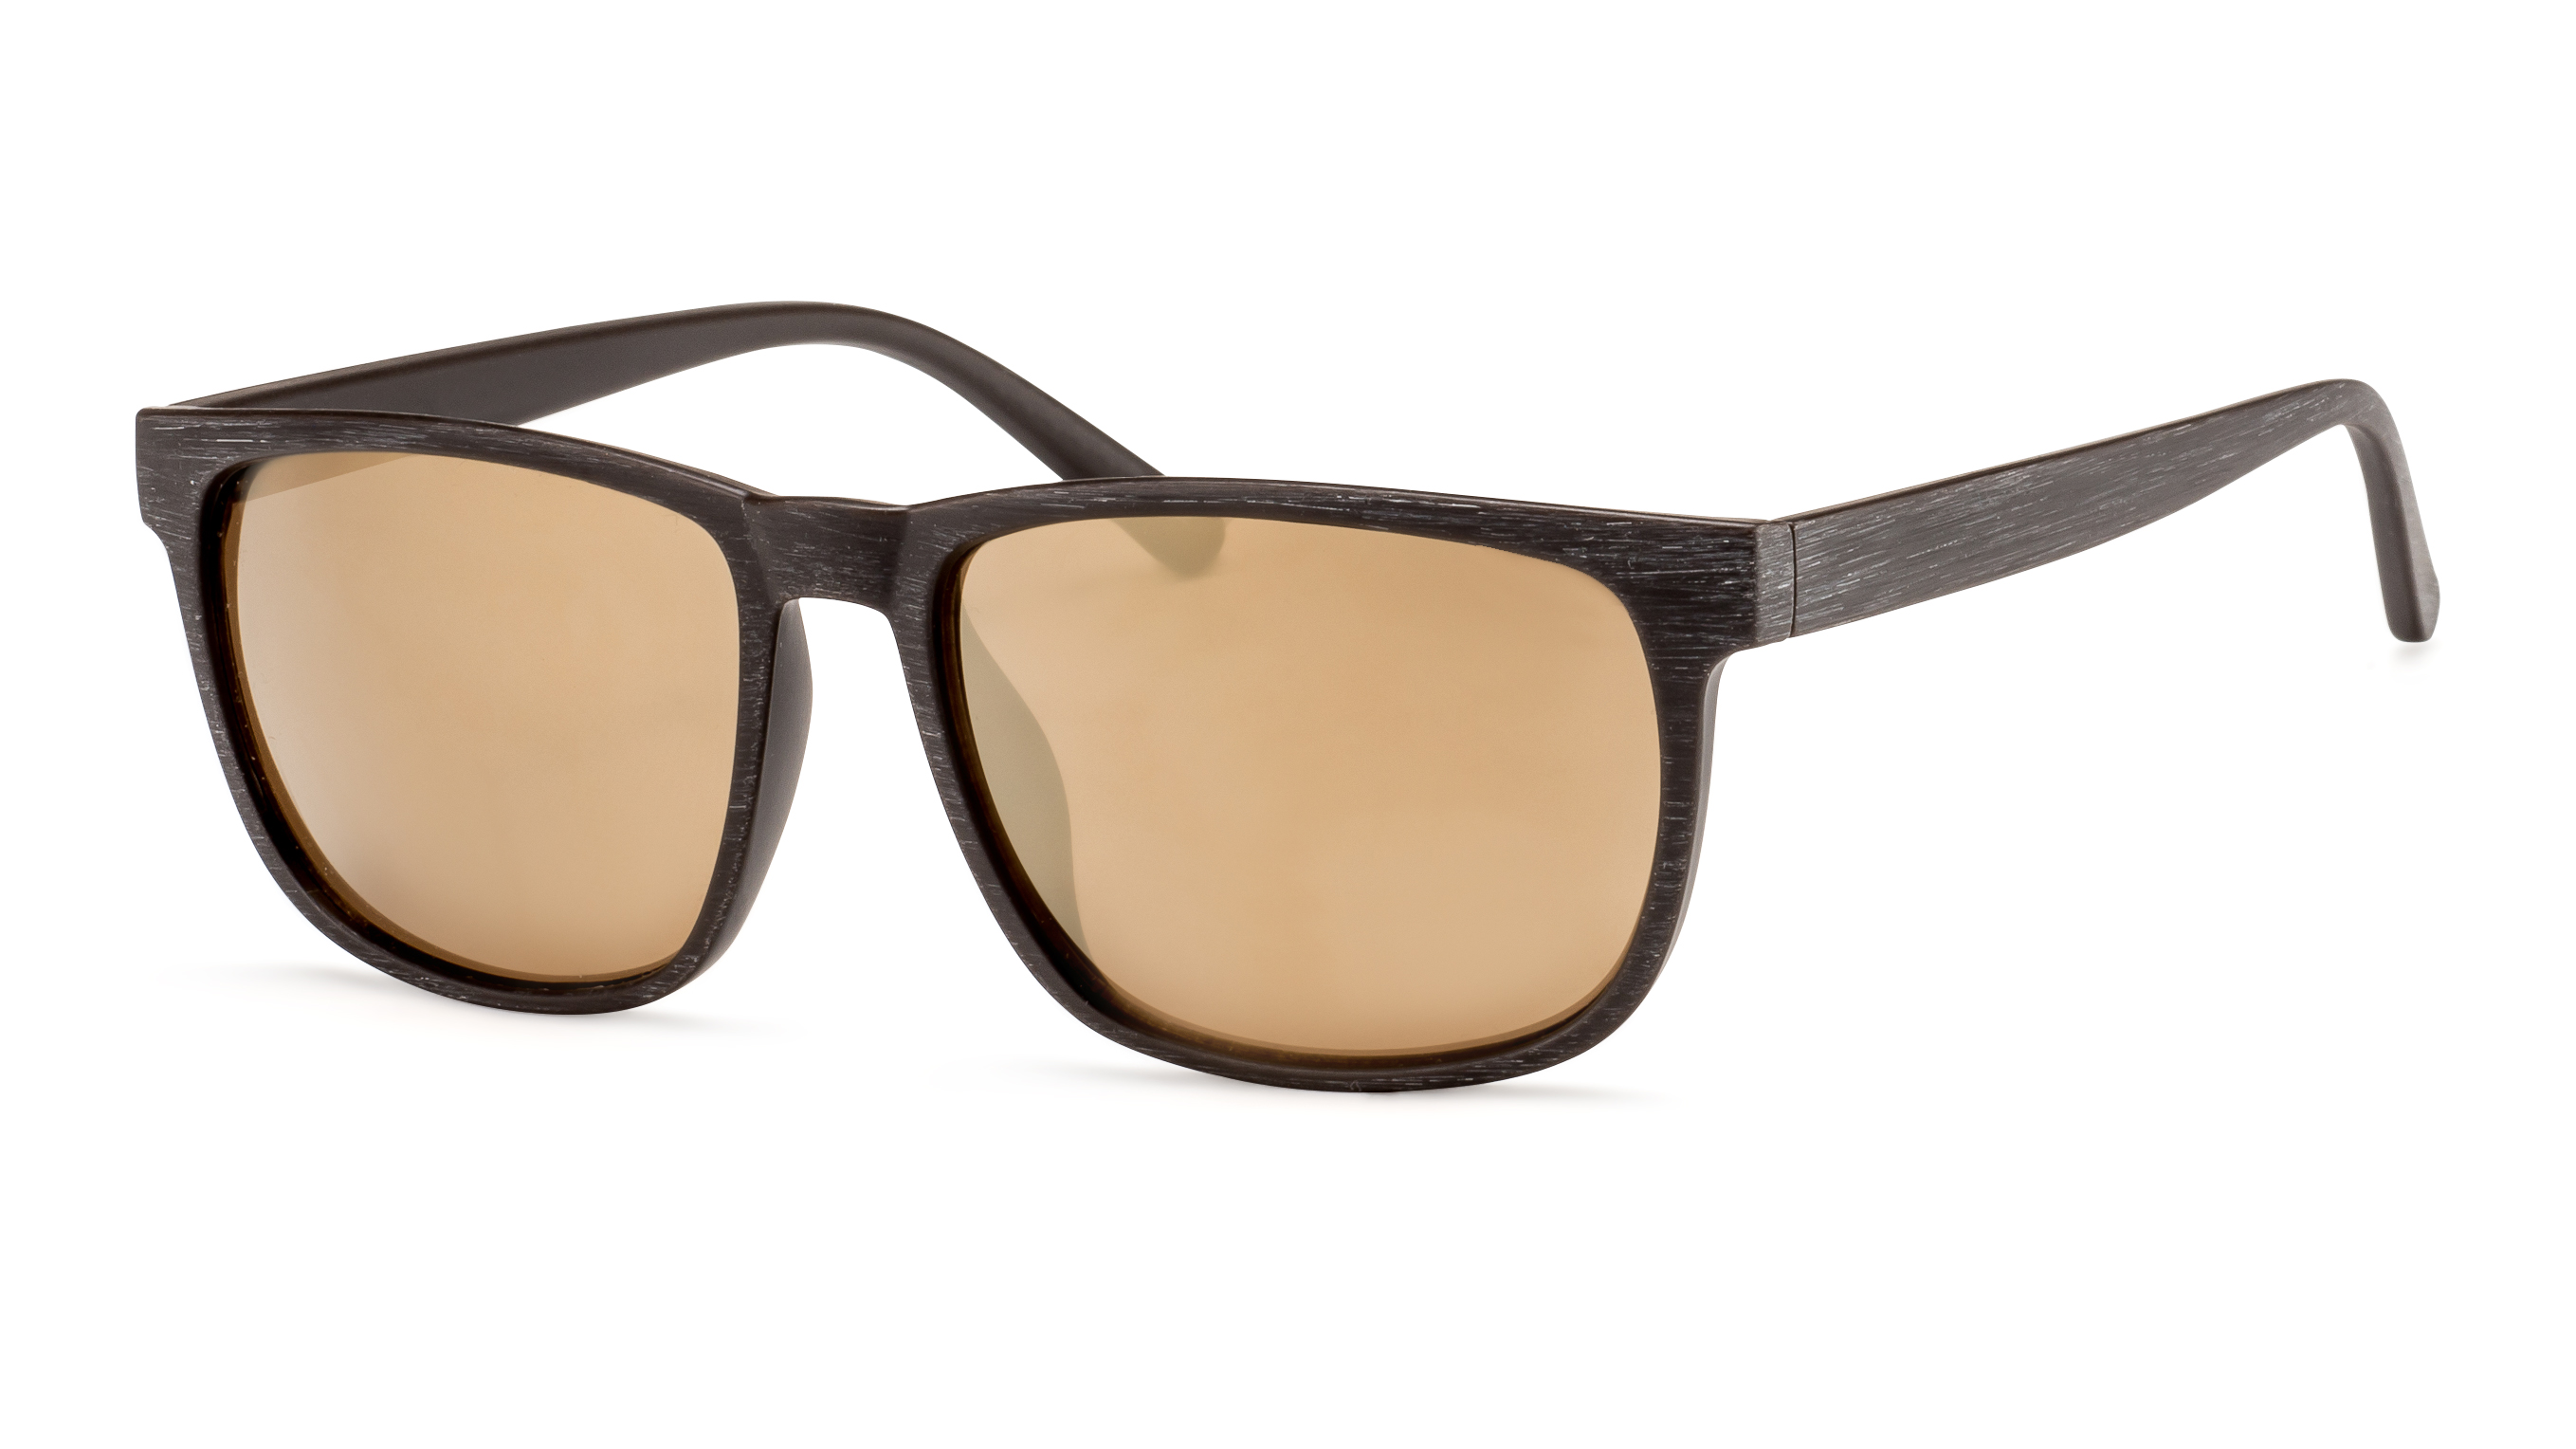 Main view sunglasses 3021179